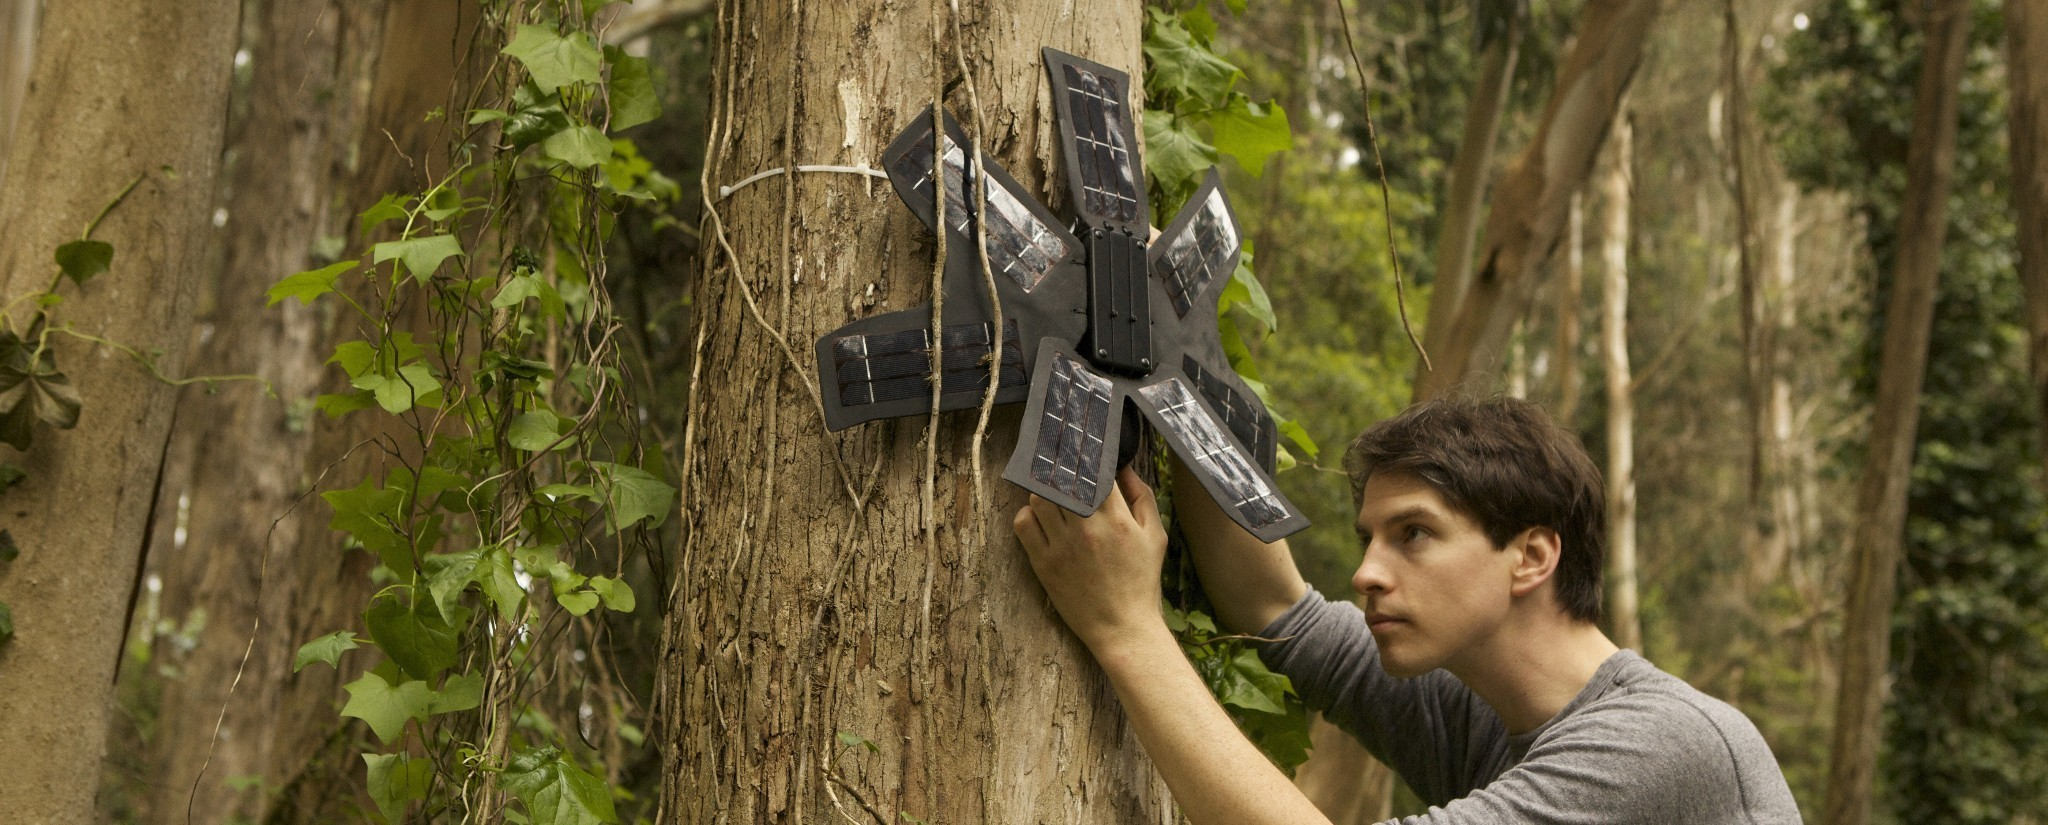 A Network of Recycled Phones Is Listening for Illegal Logging in the Rainforest - VICE